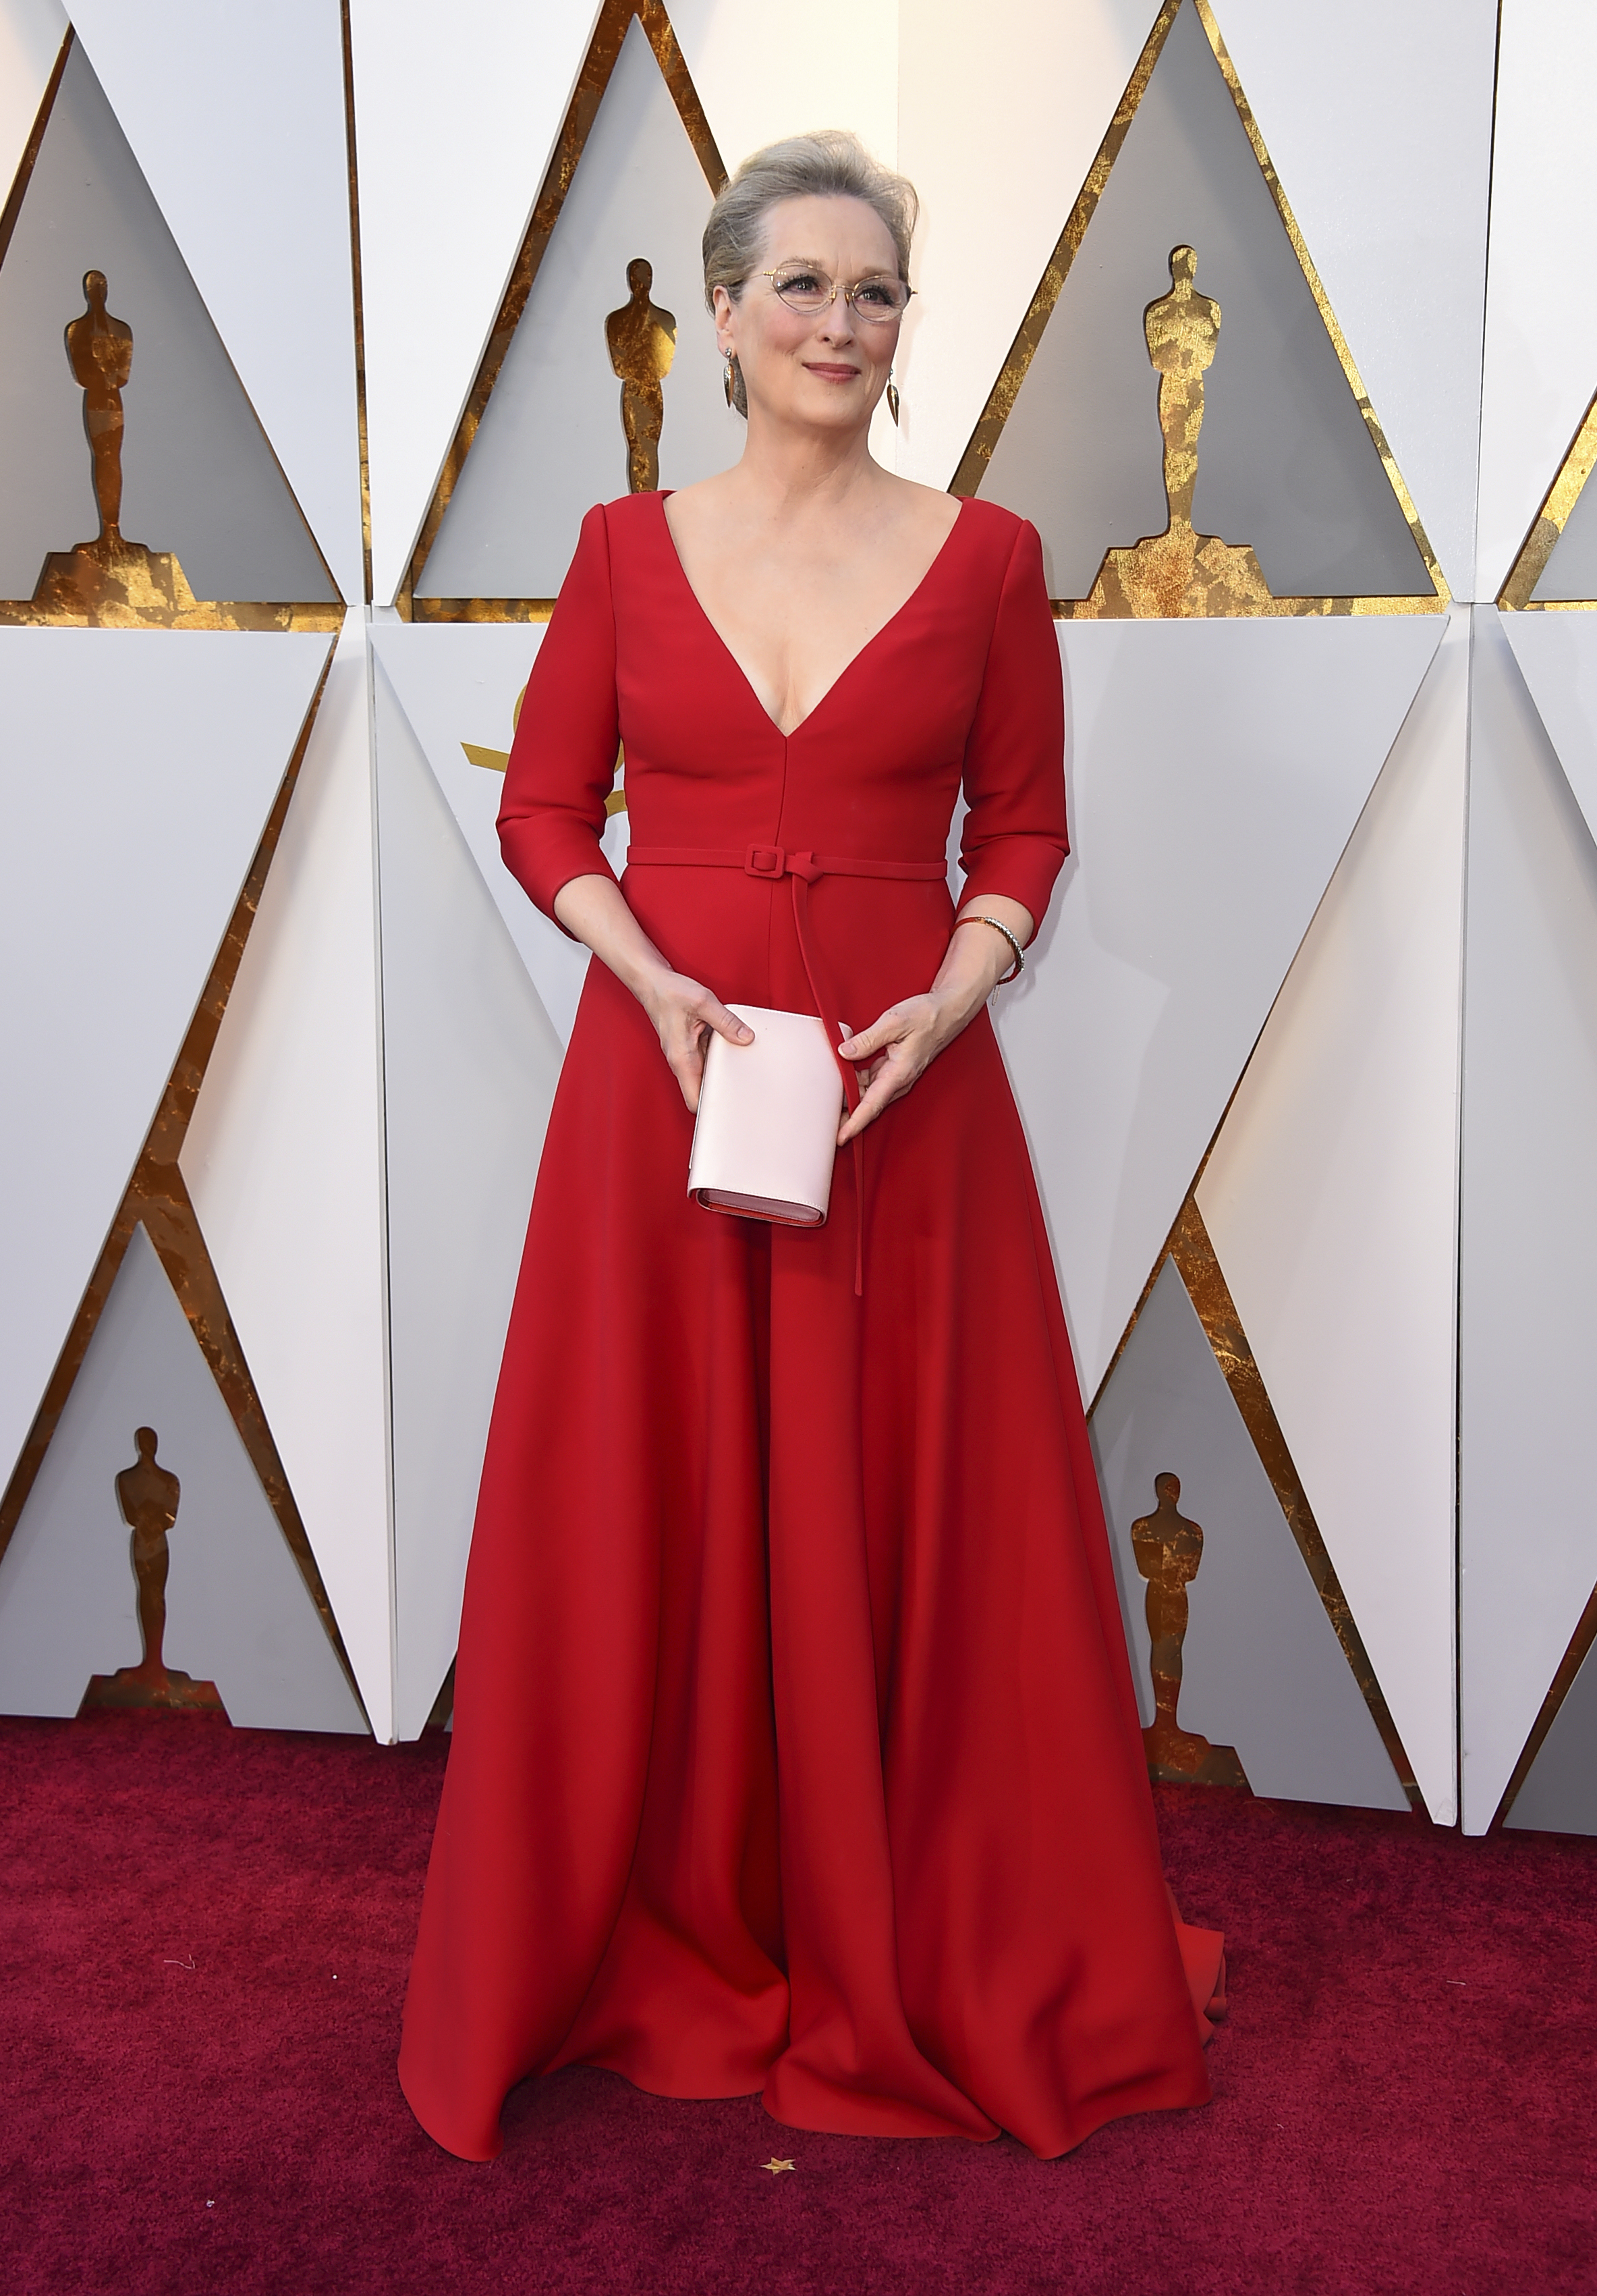 <div class='meta'><div class='origin-logo' data-origin='none'></div><span class='caption-text' data-credit='Jordan Strauss/Invision/AP'>Meryl Streep, nominated for Best Actress for ''The Post,'' arrives at the Oscars on Sunday, March 4, 2018, at the Dolby Theatre in Los Angeles.</span></div>